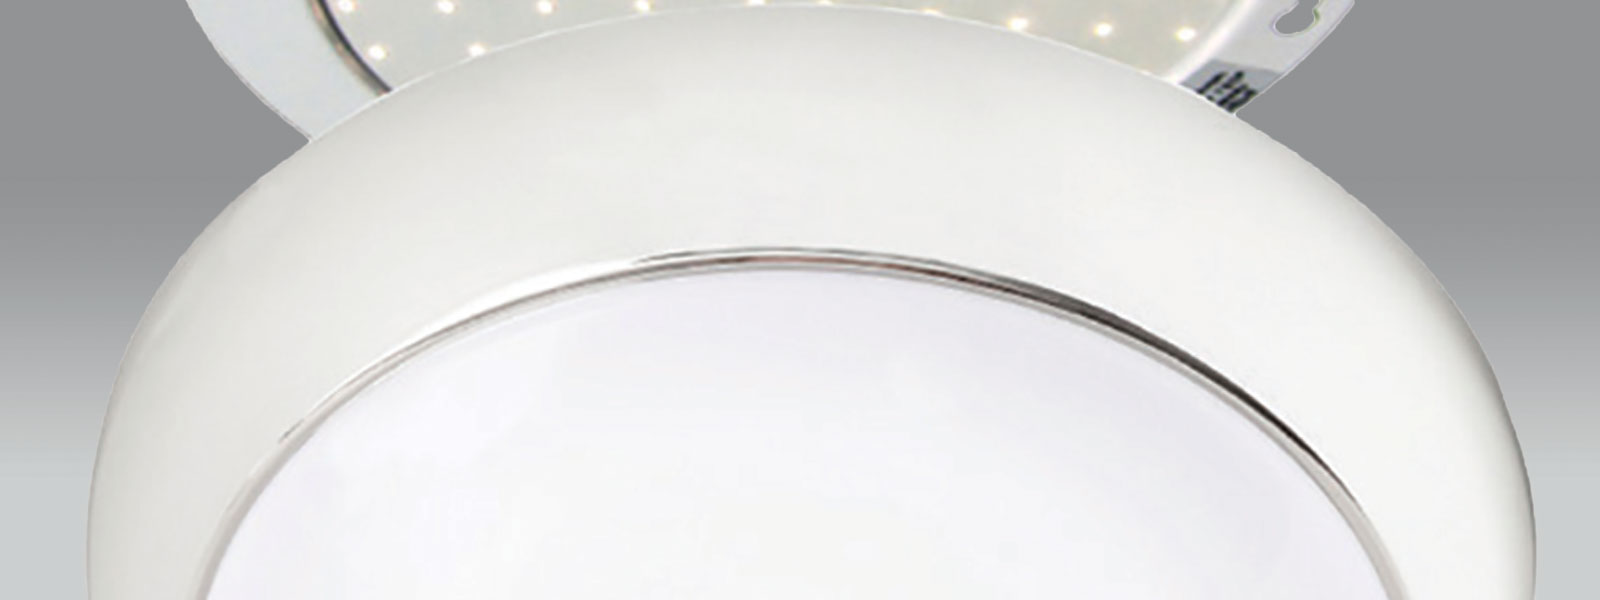 Contact LED Group ROBUS